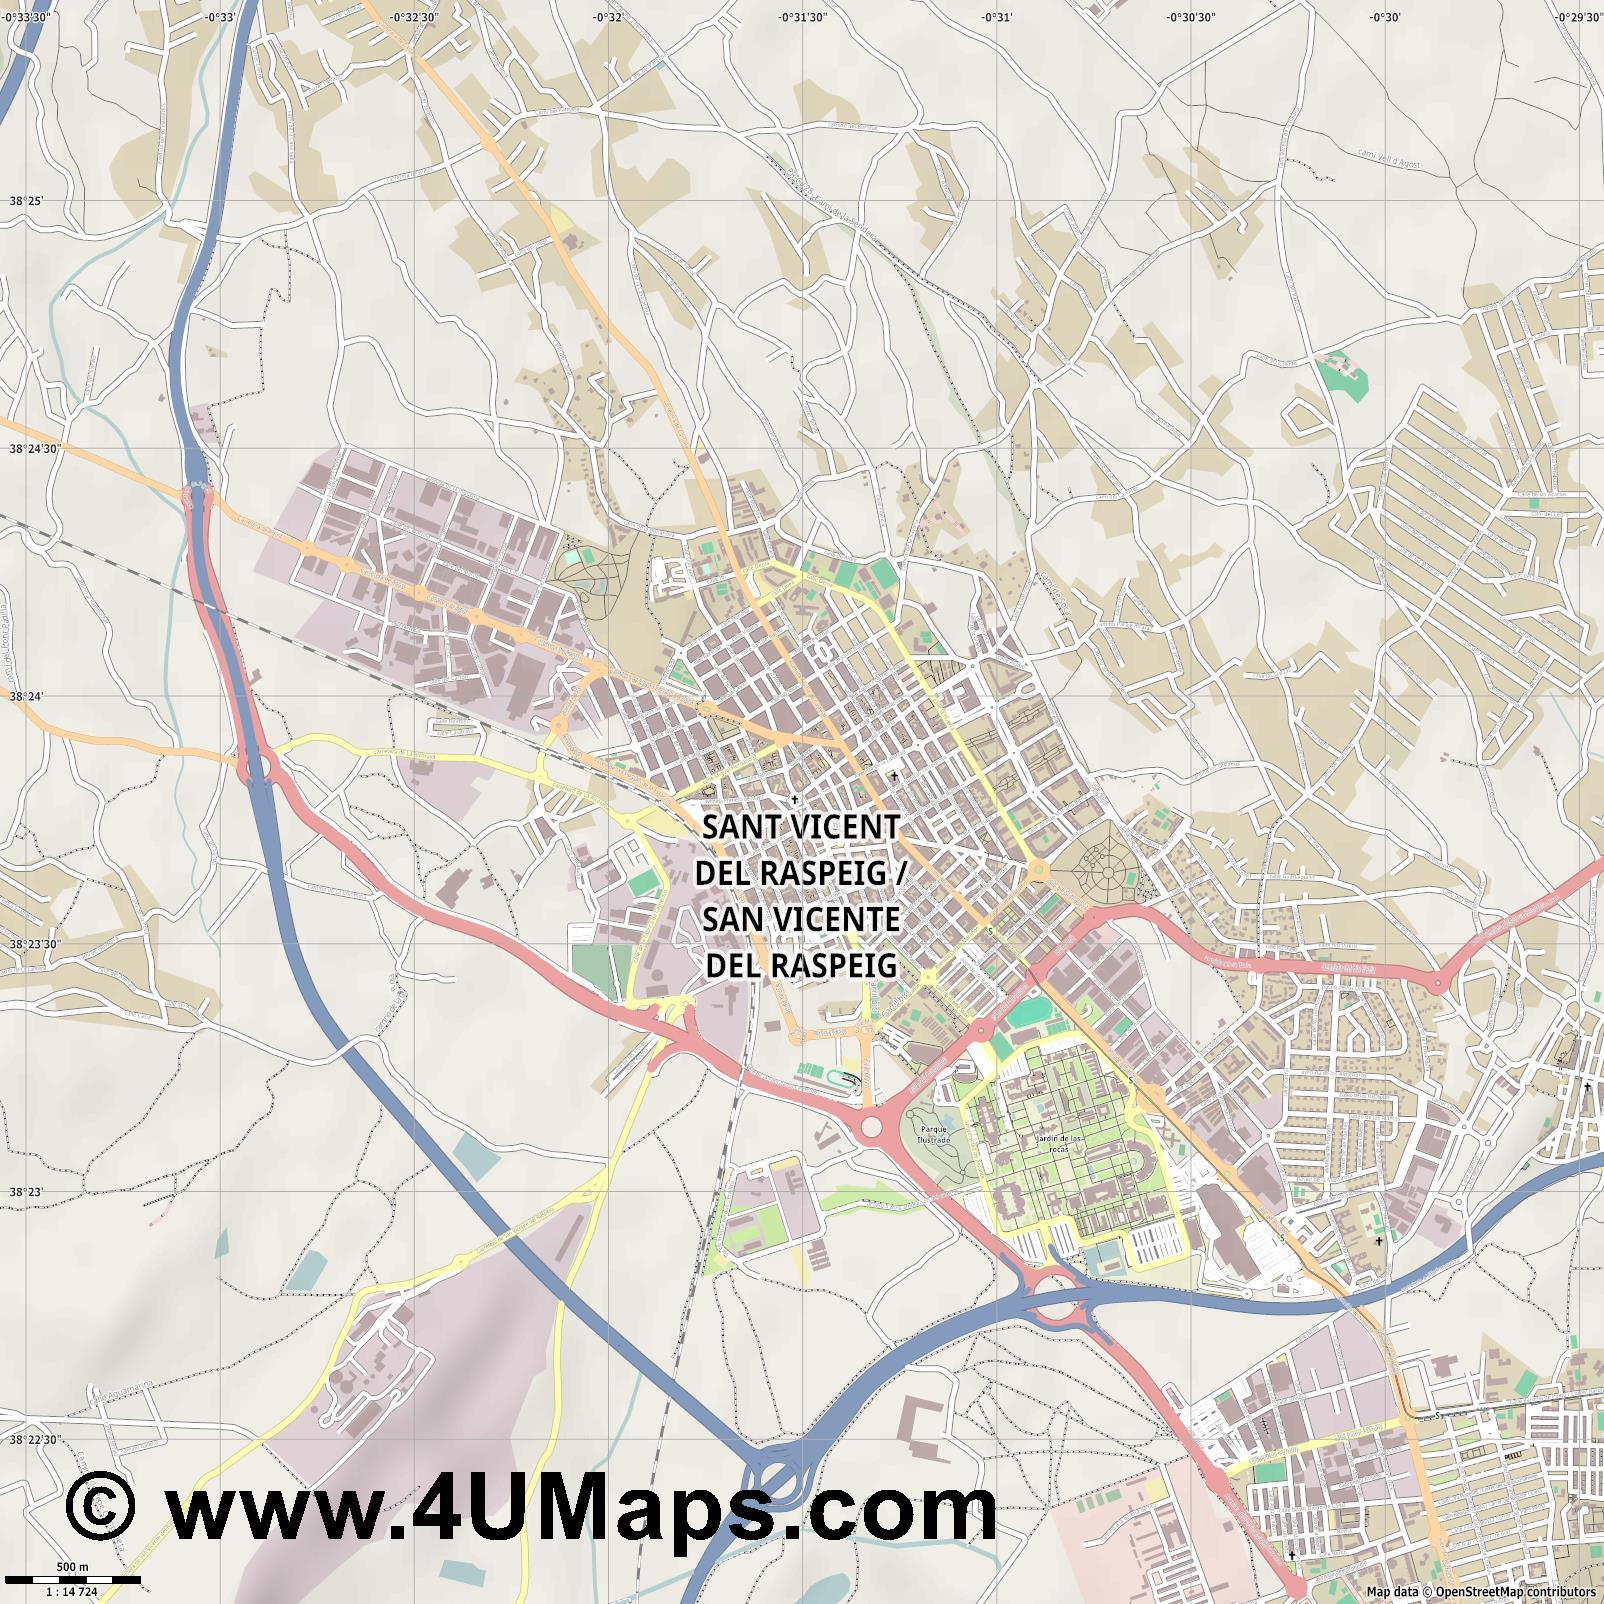 San Vicente del Raspeig Sant Vicent del Raspeig  jpg ultra high detail preview vector city map